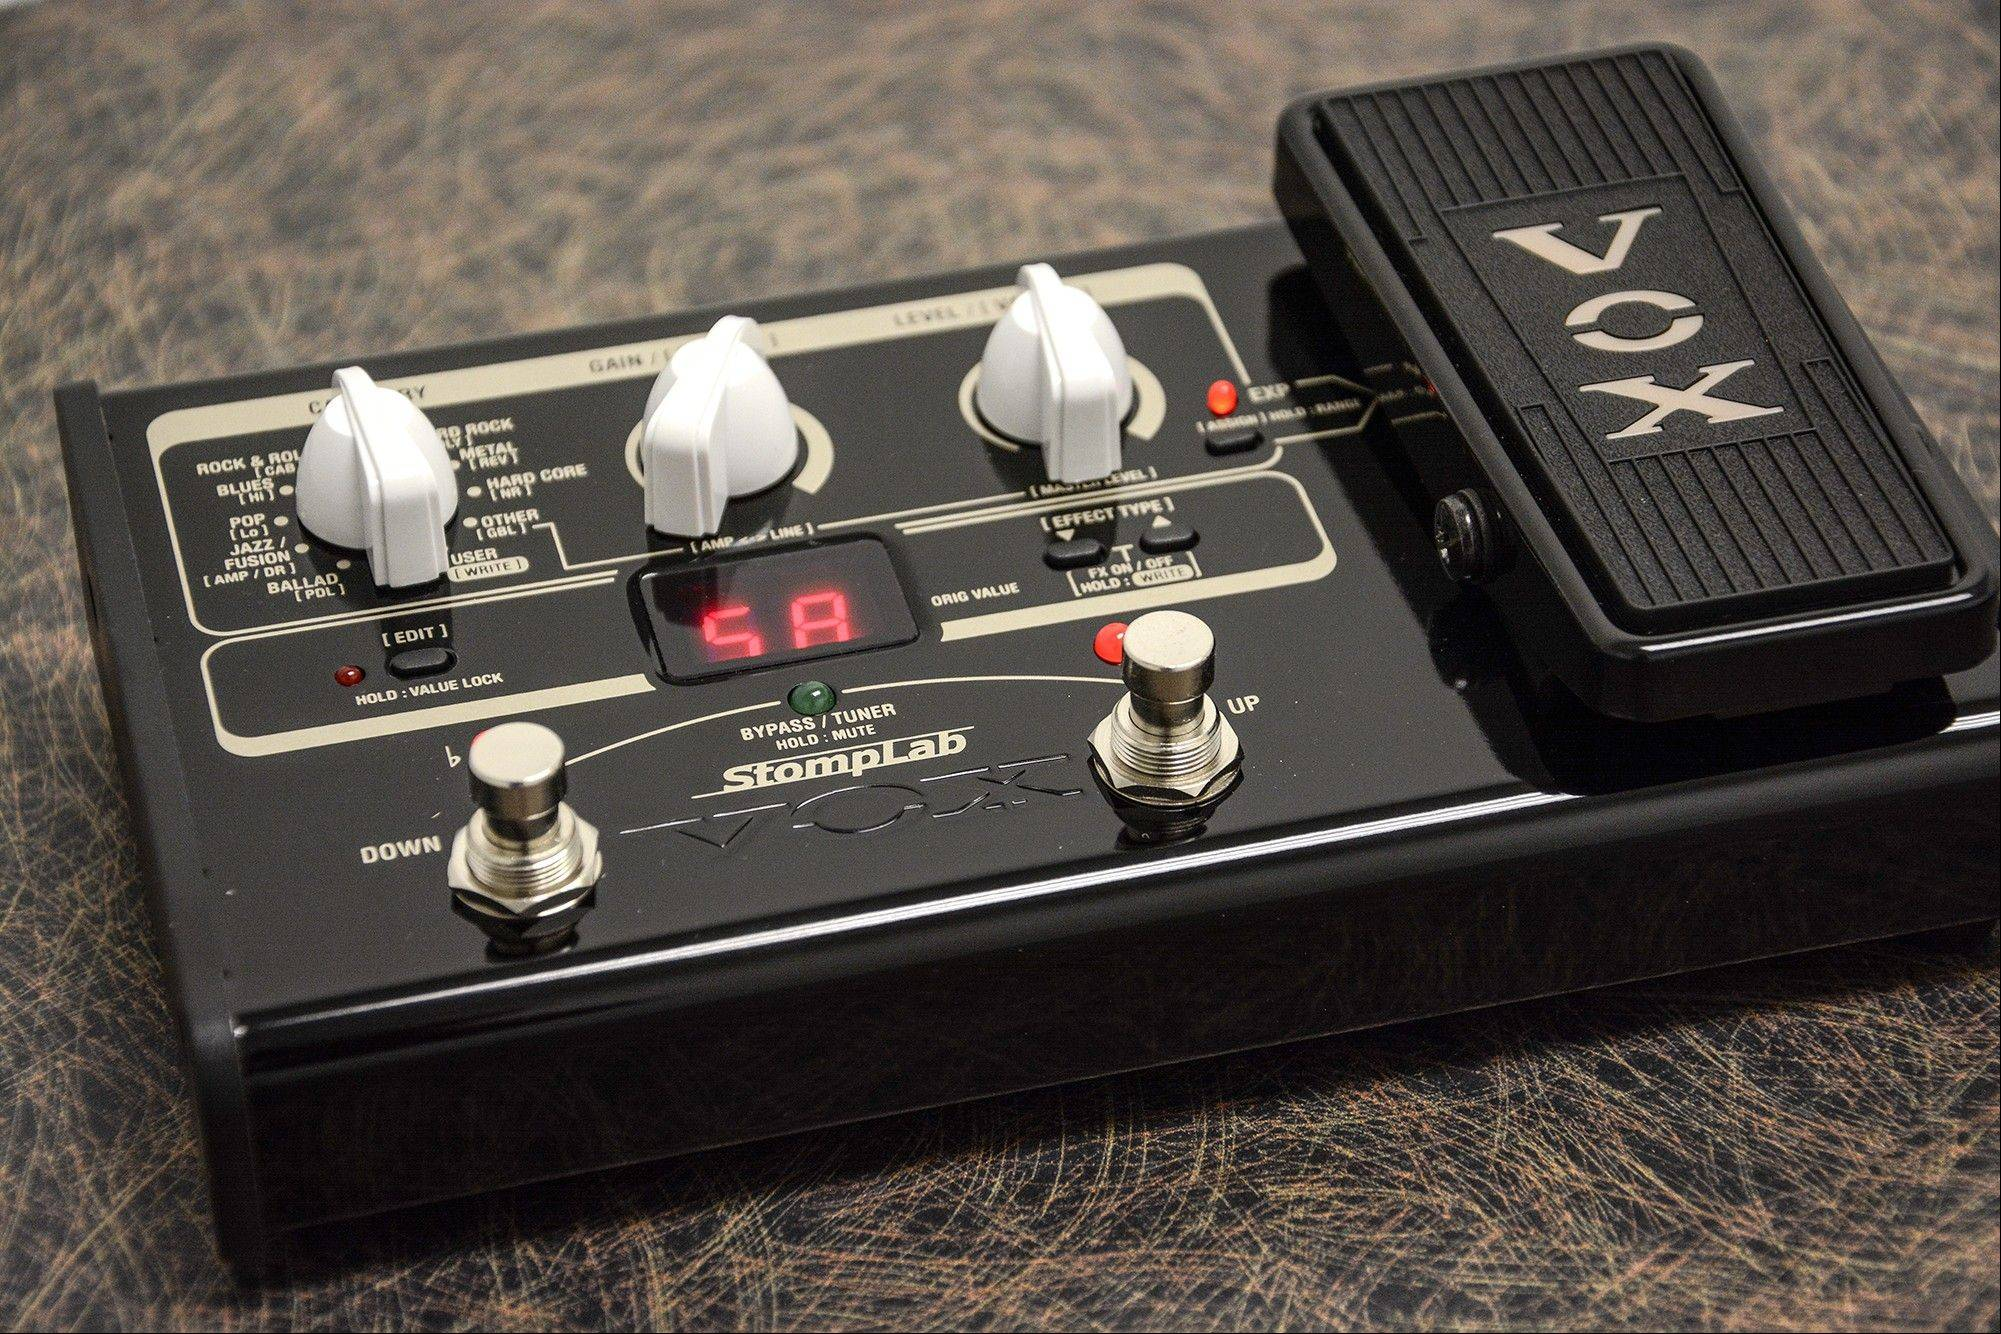 The Vox StompLab 2G is a sound effects pedal with preset sounds.